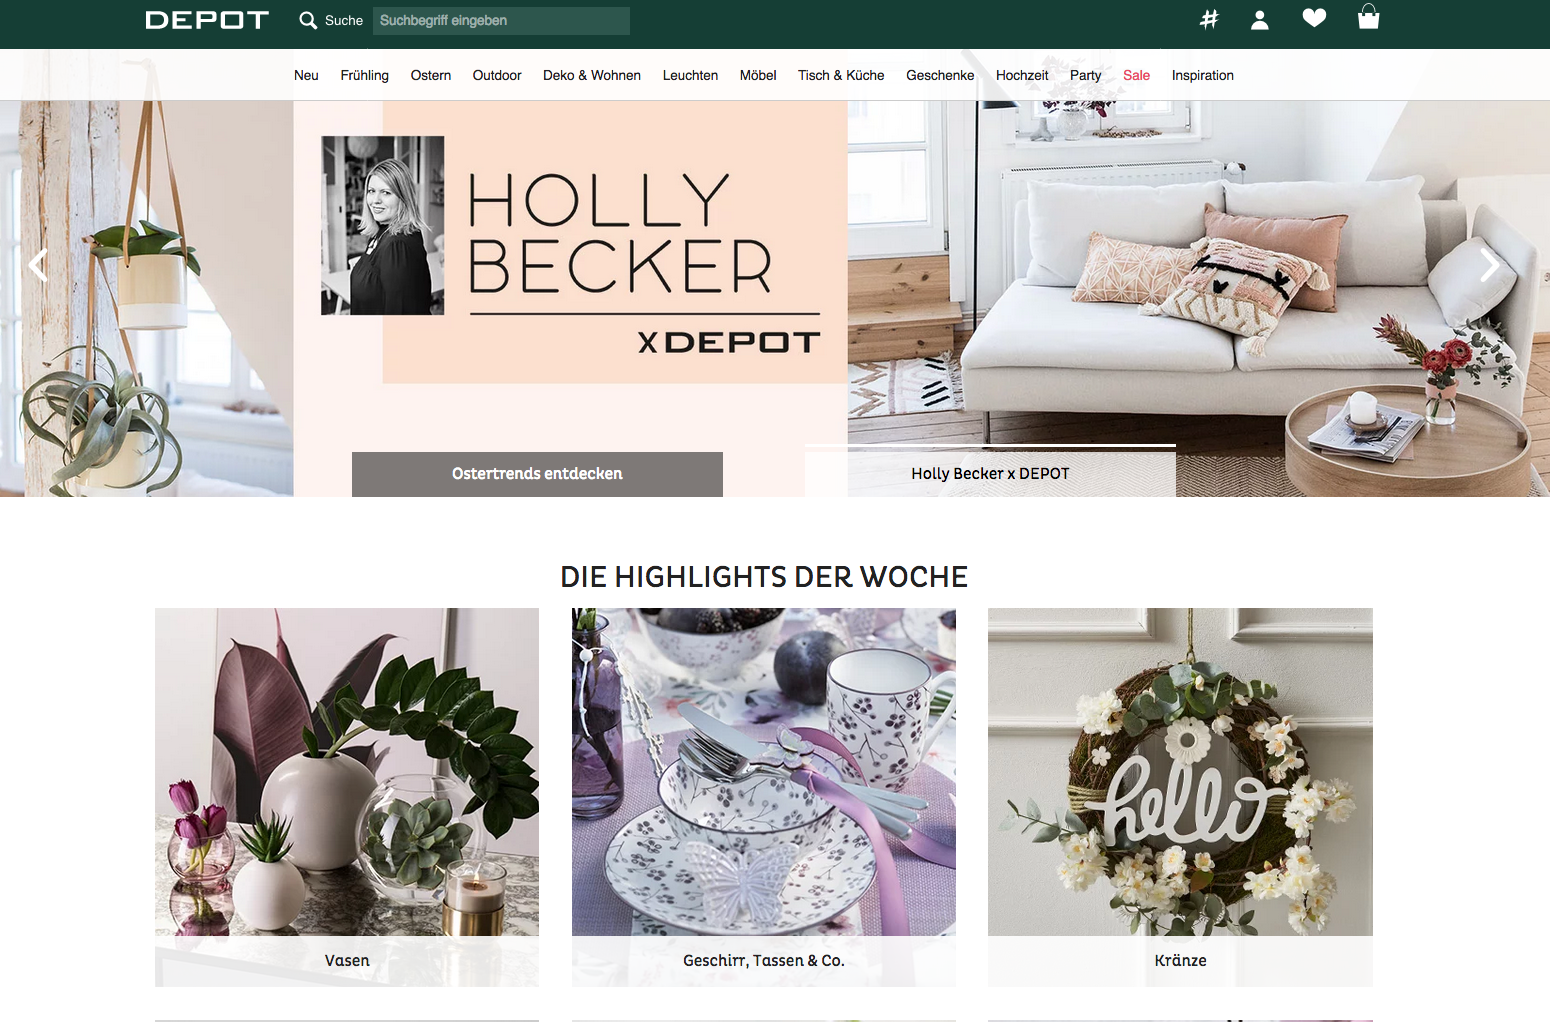 Holly Becker collection at DEPOT